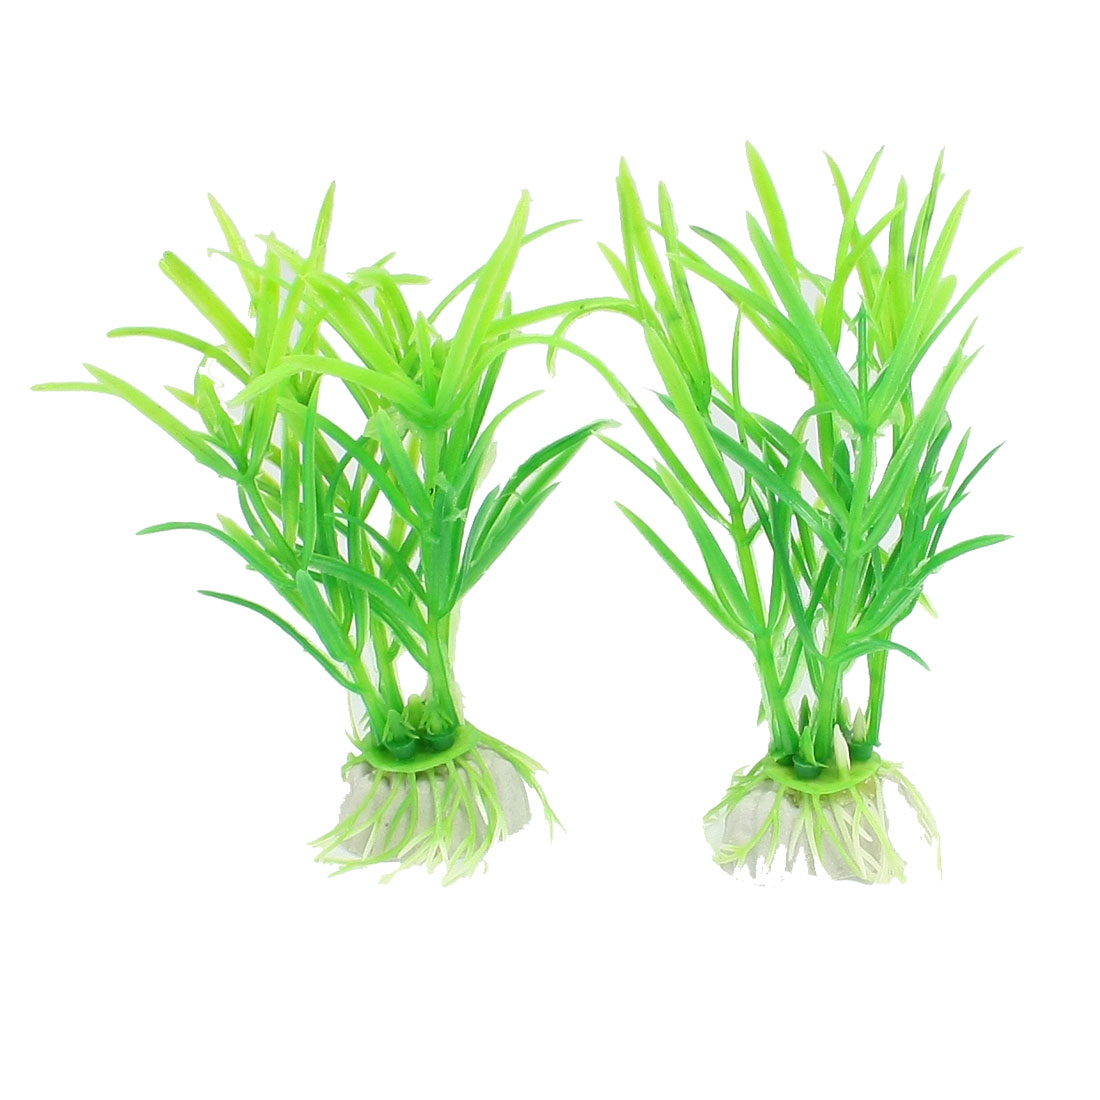 2 Pcs Green Plastic Grass Plant Decoration for Fish Tank Aquarium